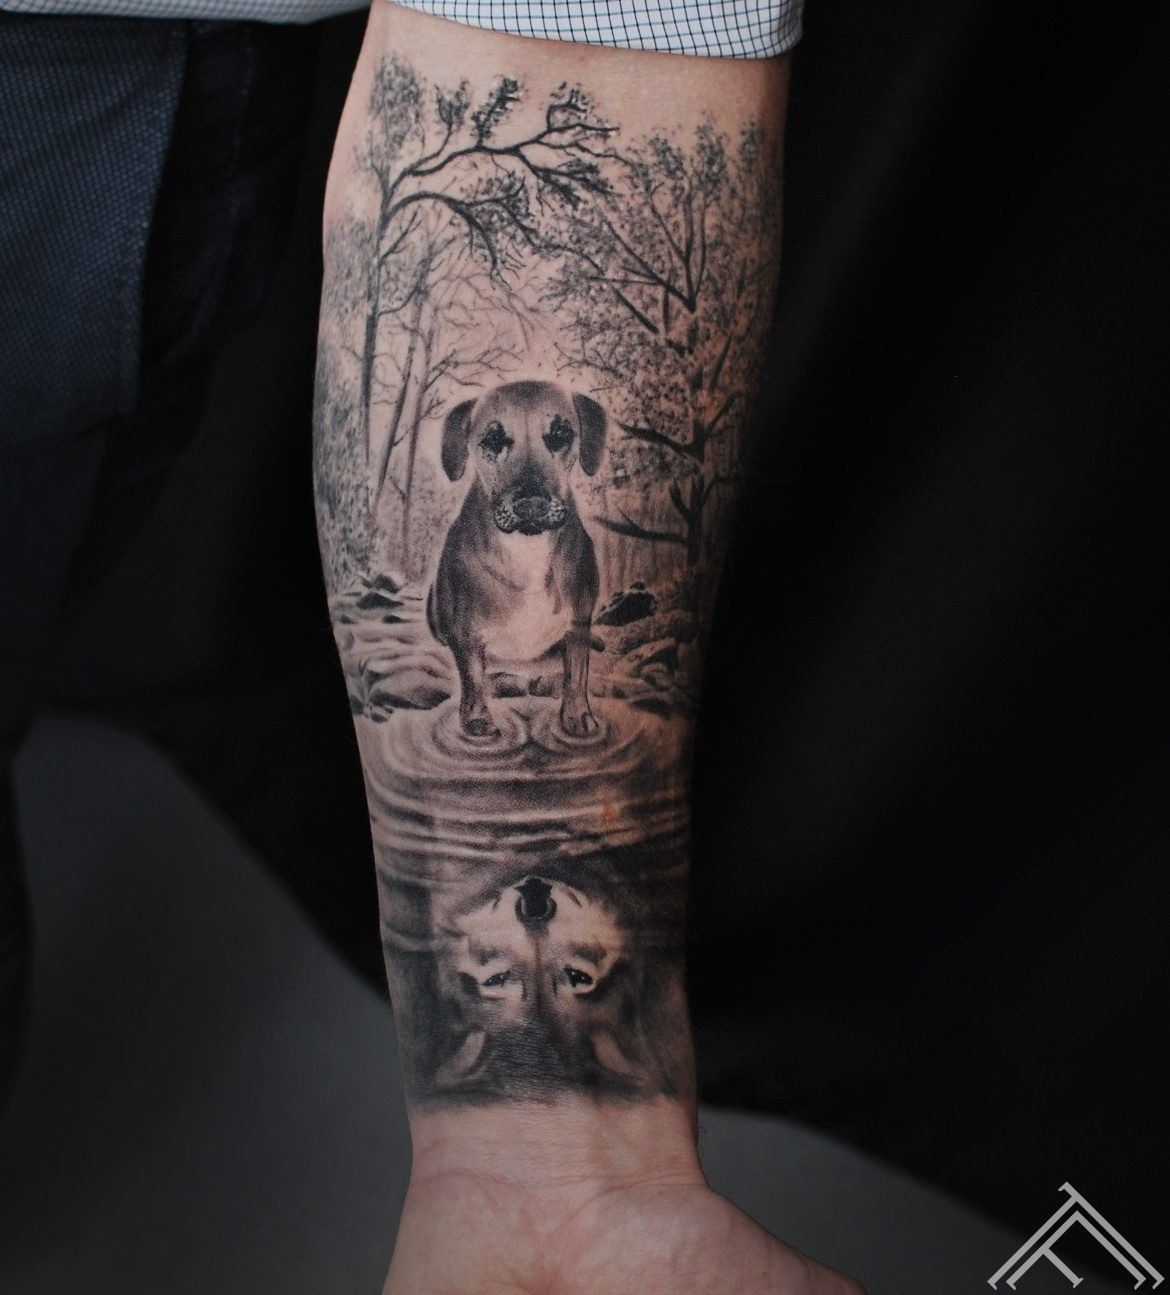 janisanderson-dog-wolf-tattoofrequency